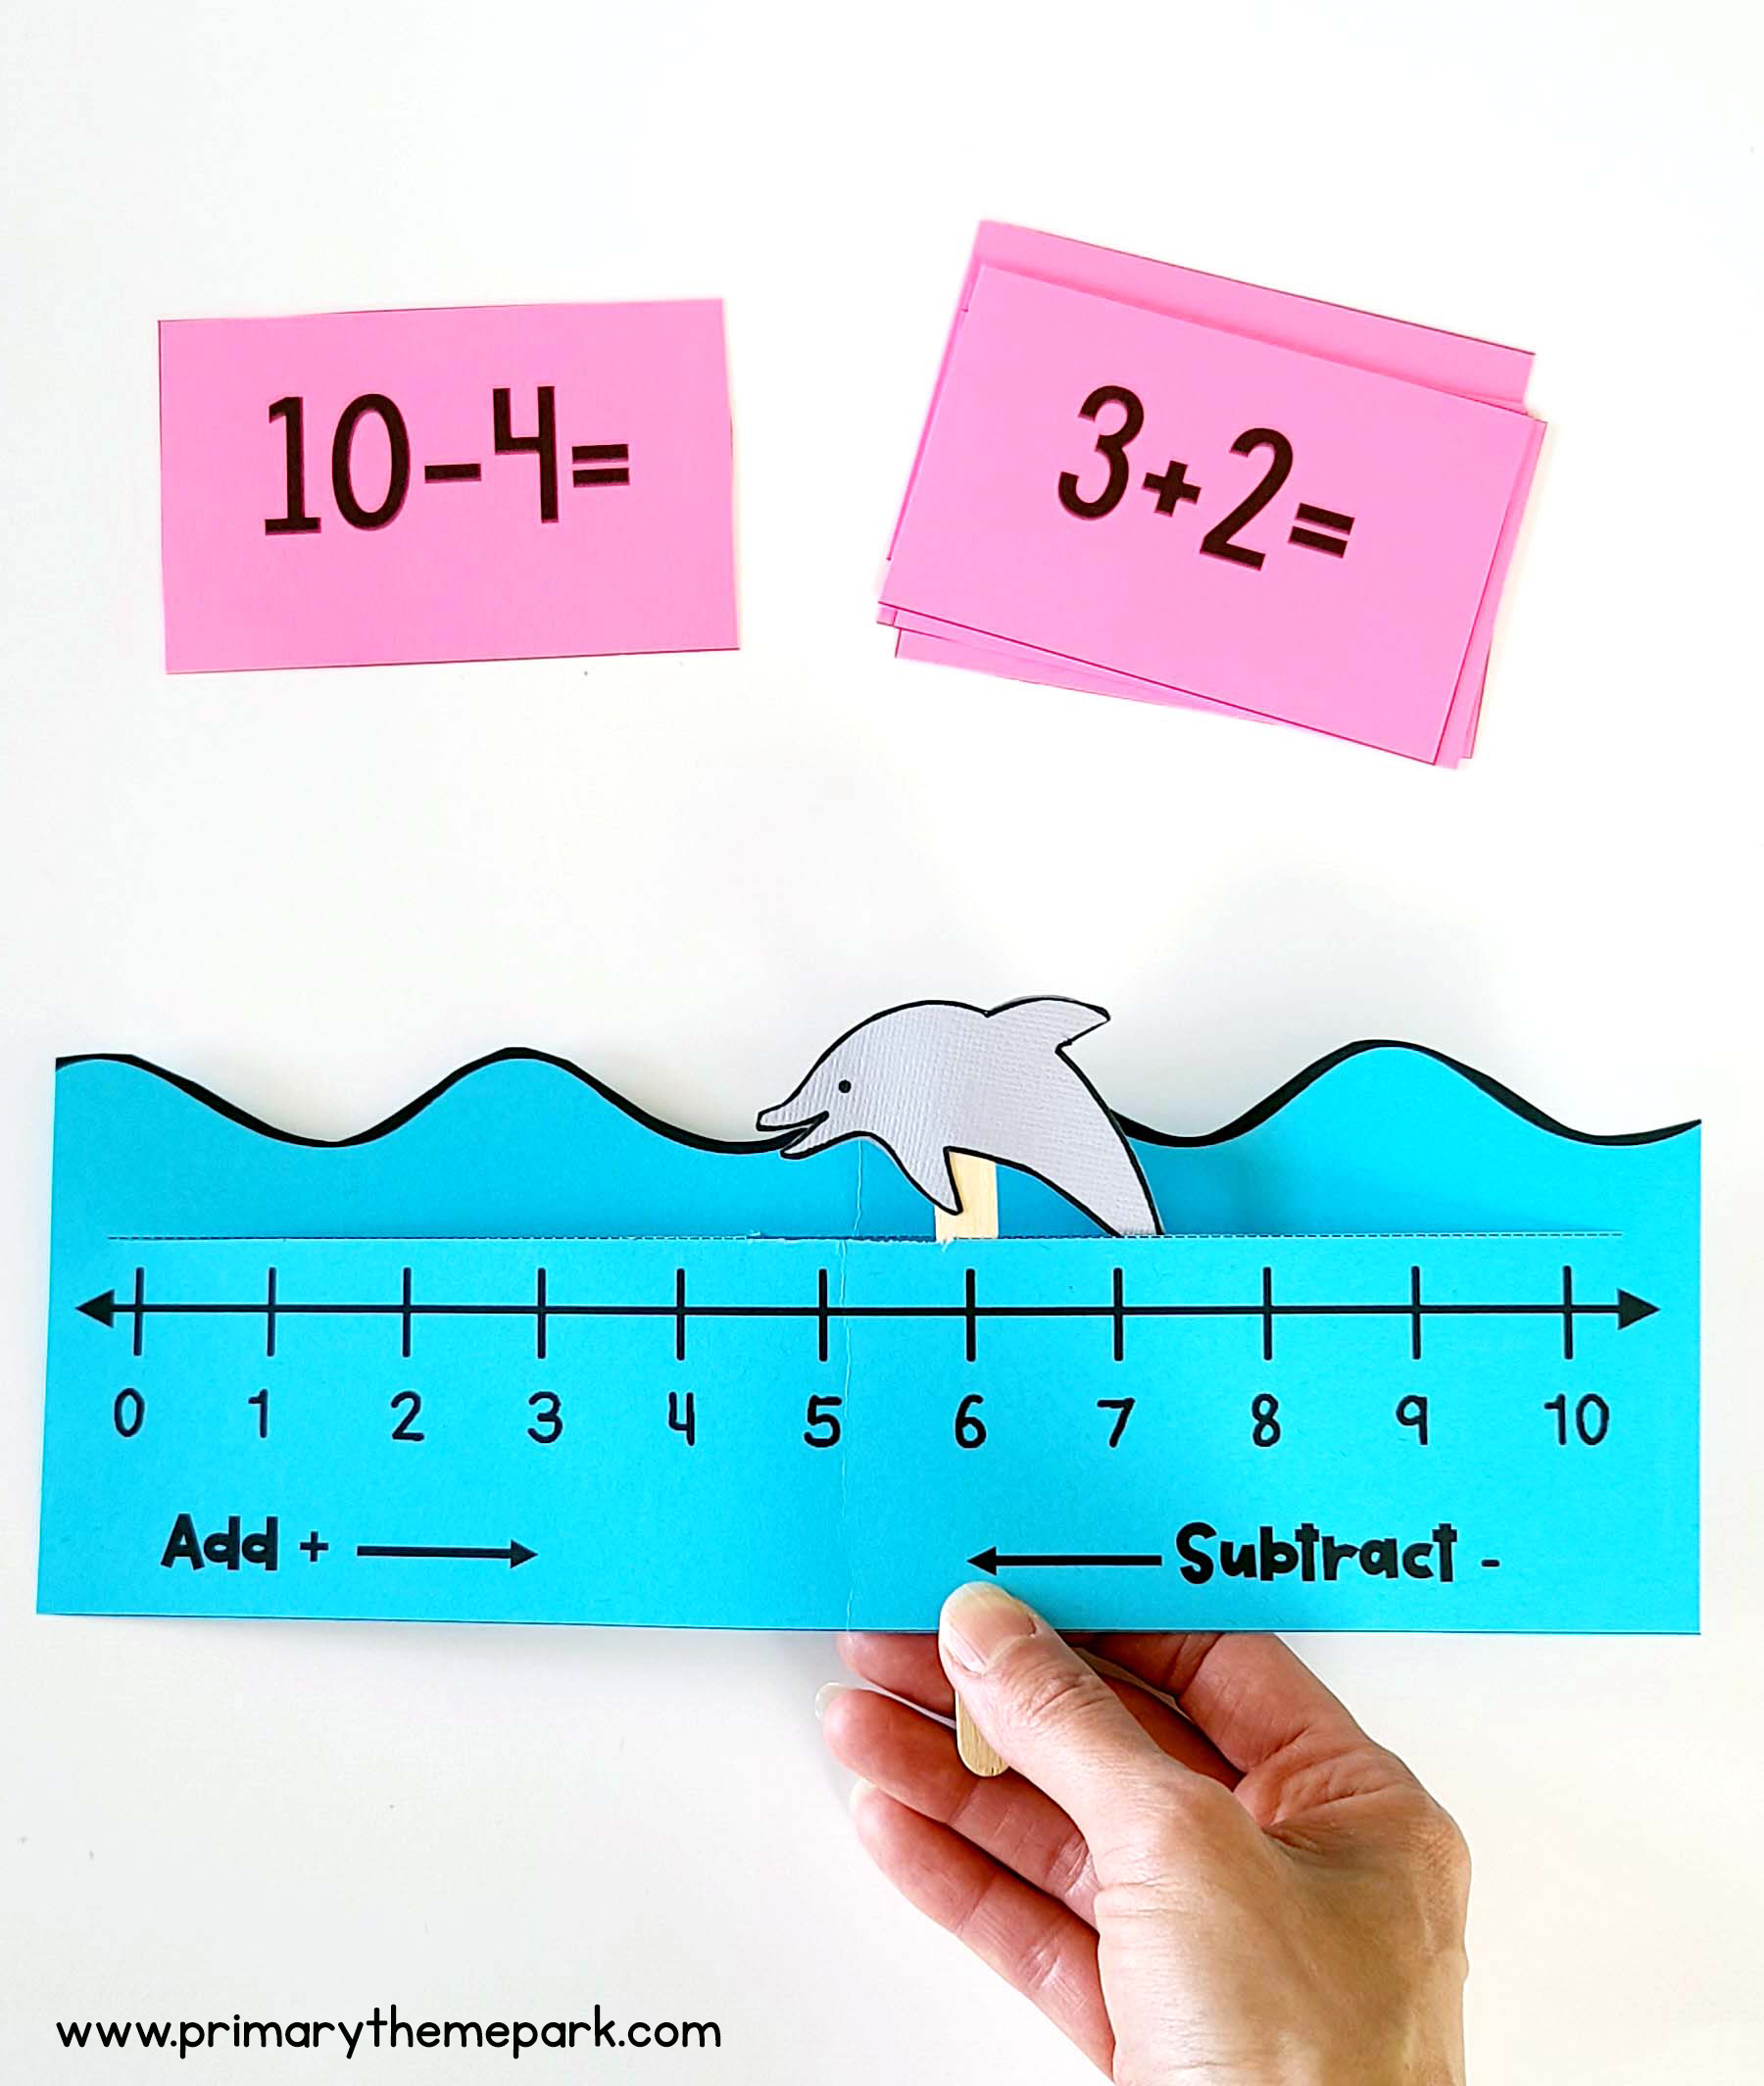 Adding and subtracting on a number line activity